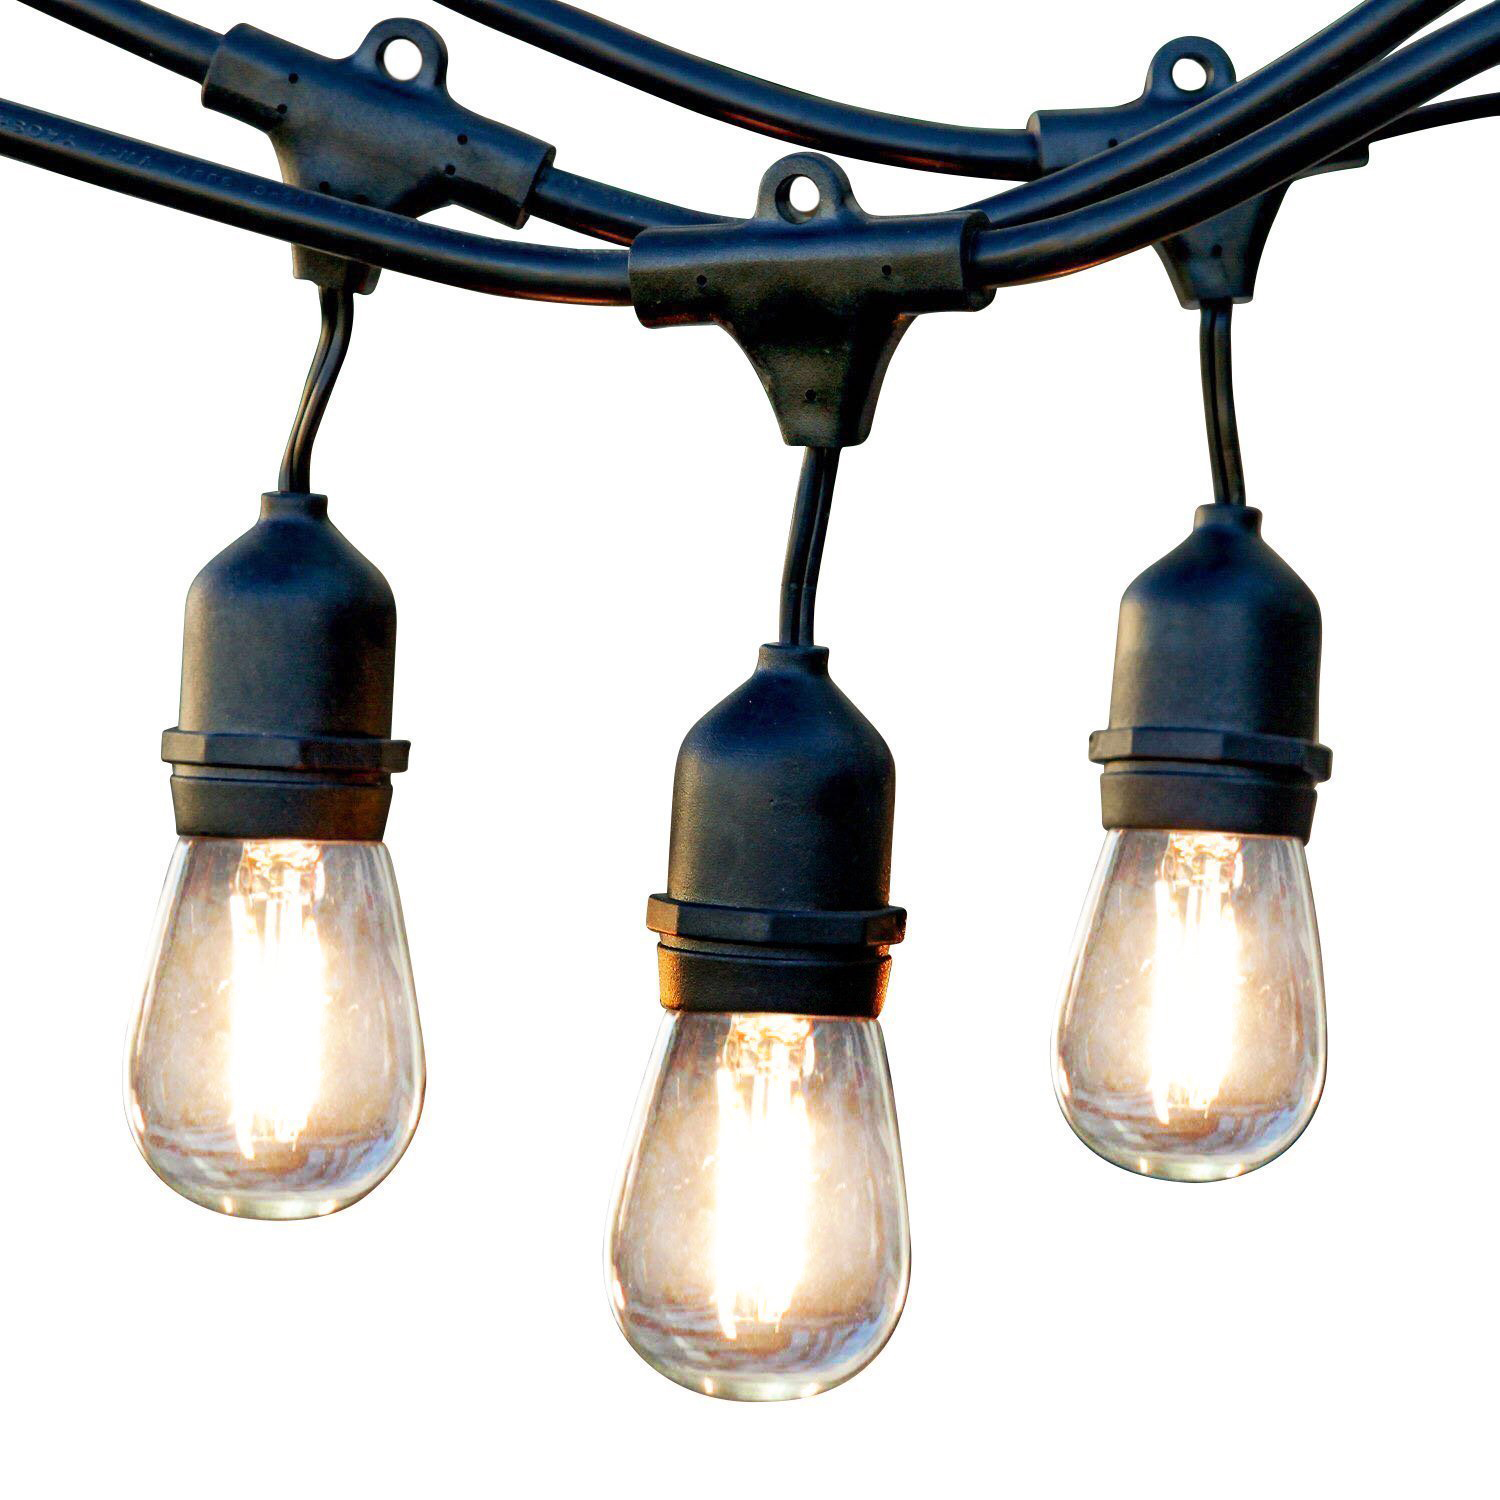 Newhouse Lighting Outdoor Weatherproof Commercial Grade LED String Lights  With Hanging Sockets | Weatherproof Technology |